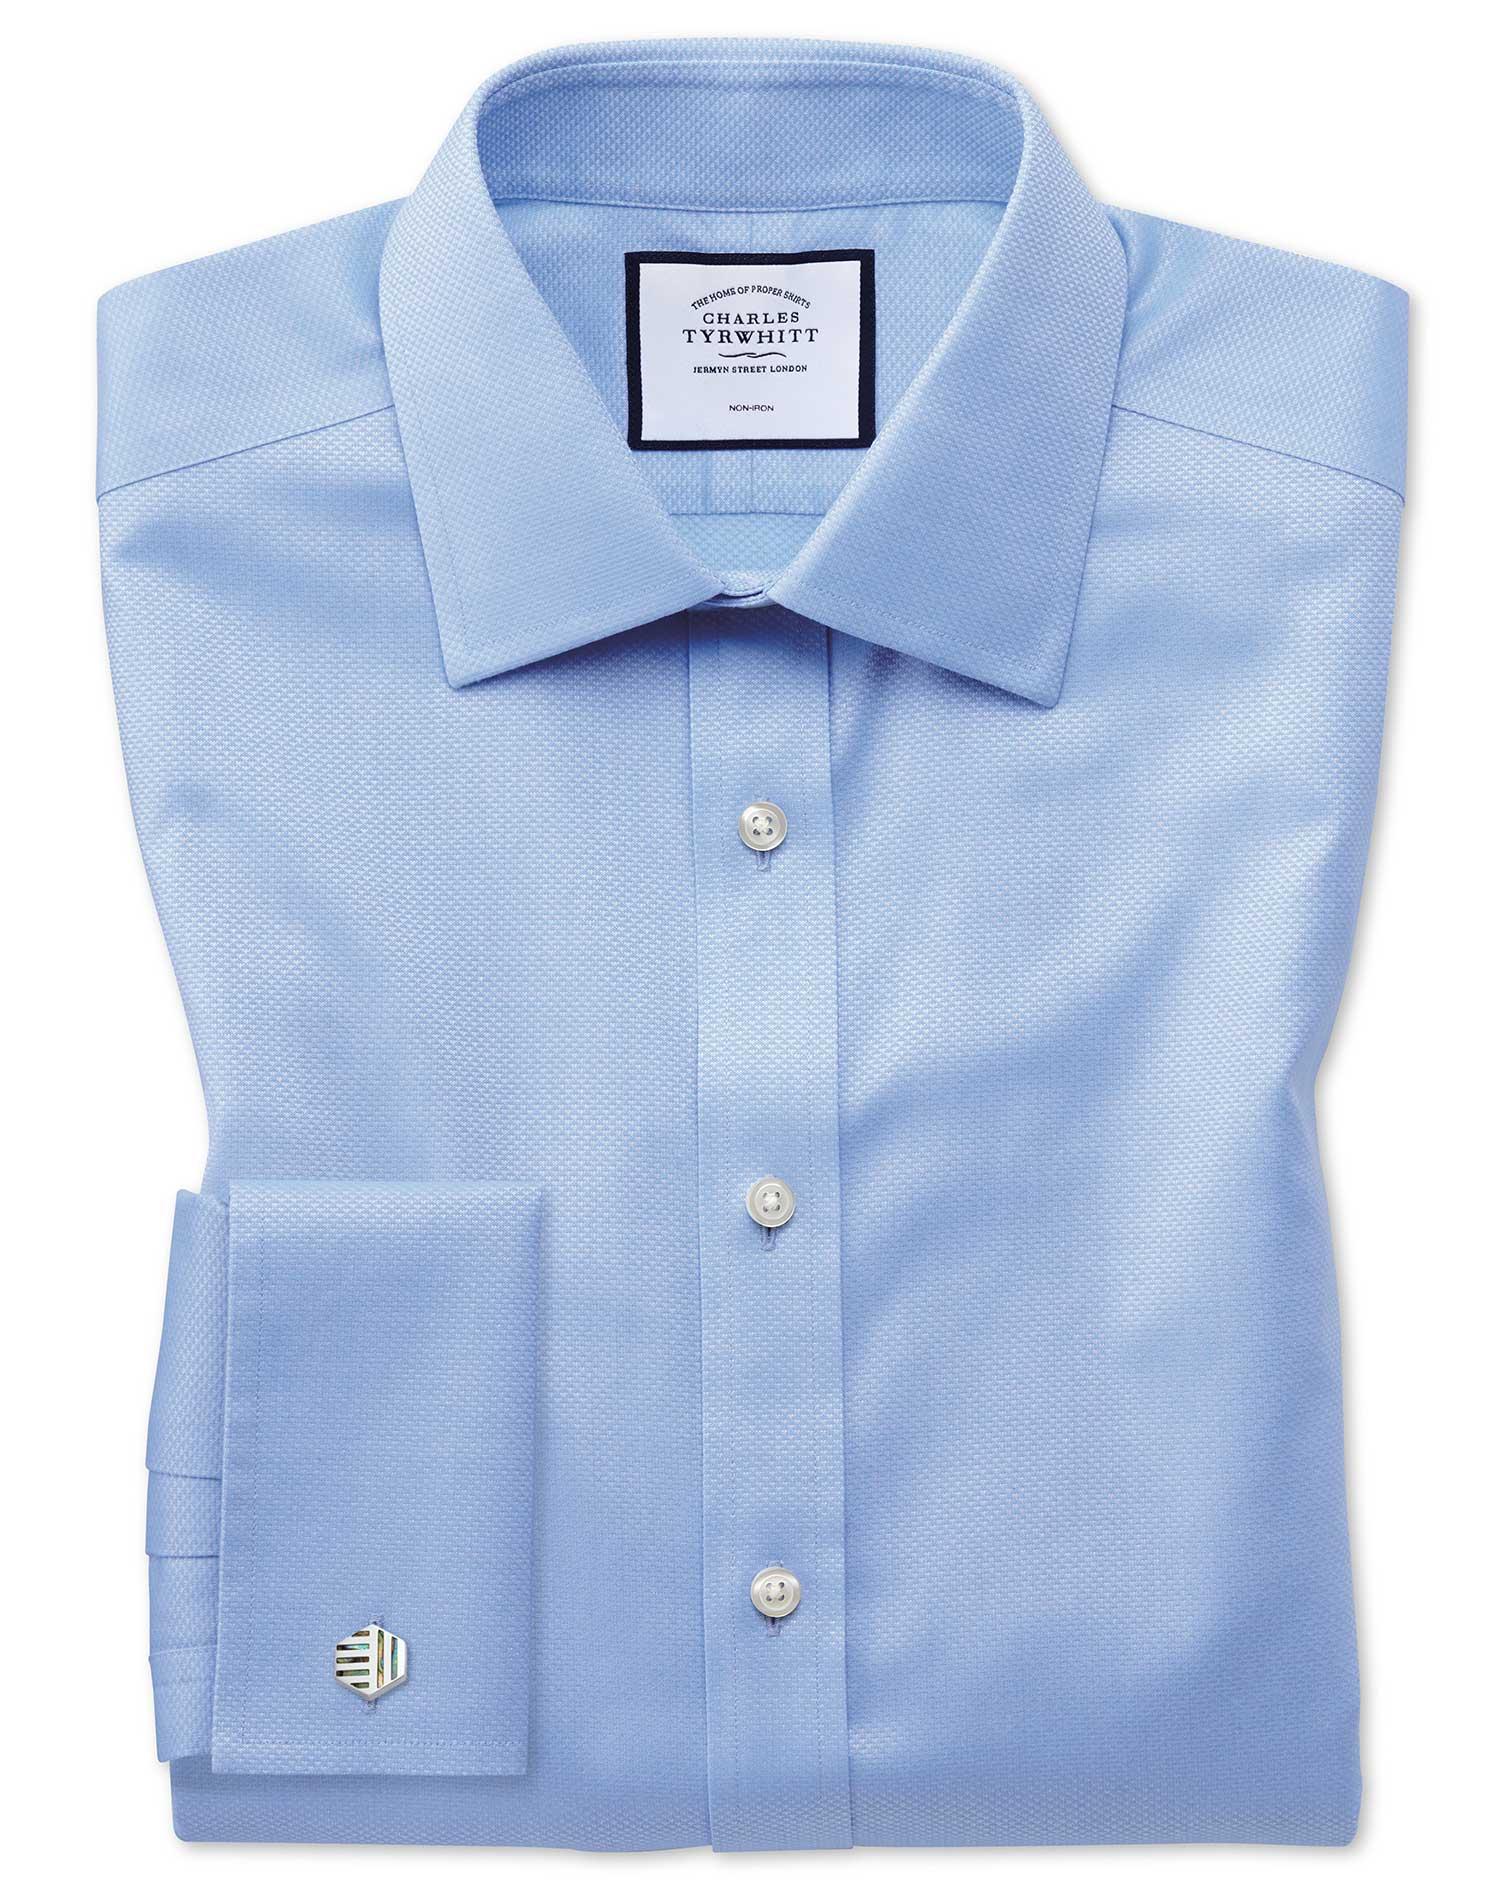 Extra Slim Fit Non-Iron Sky Blue Triangle Weave Cotton Formal Shirt Double Cuff Size 16/35 by Charle